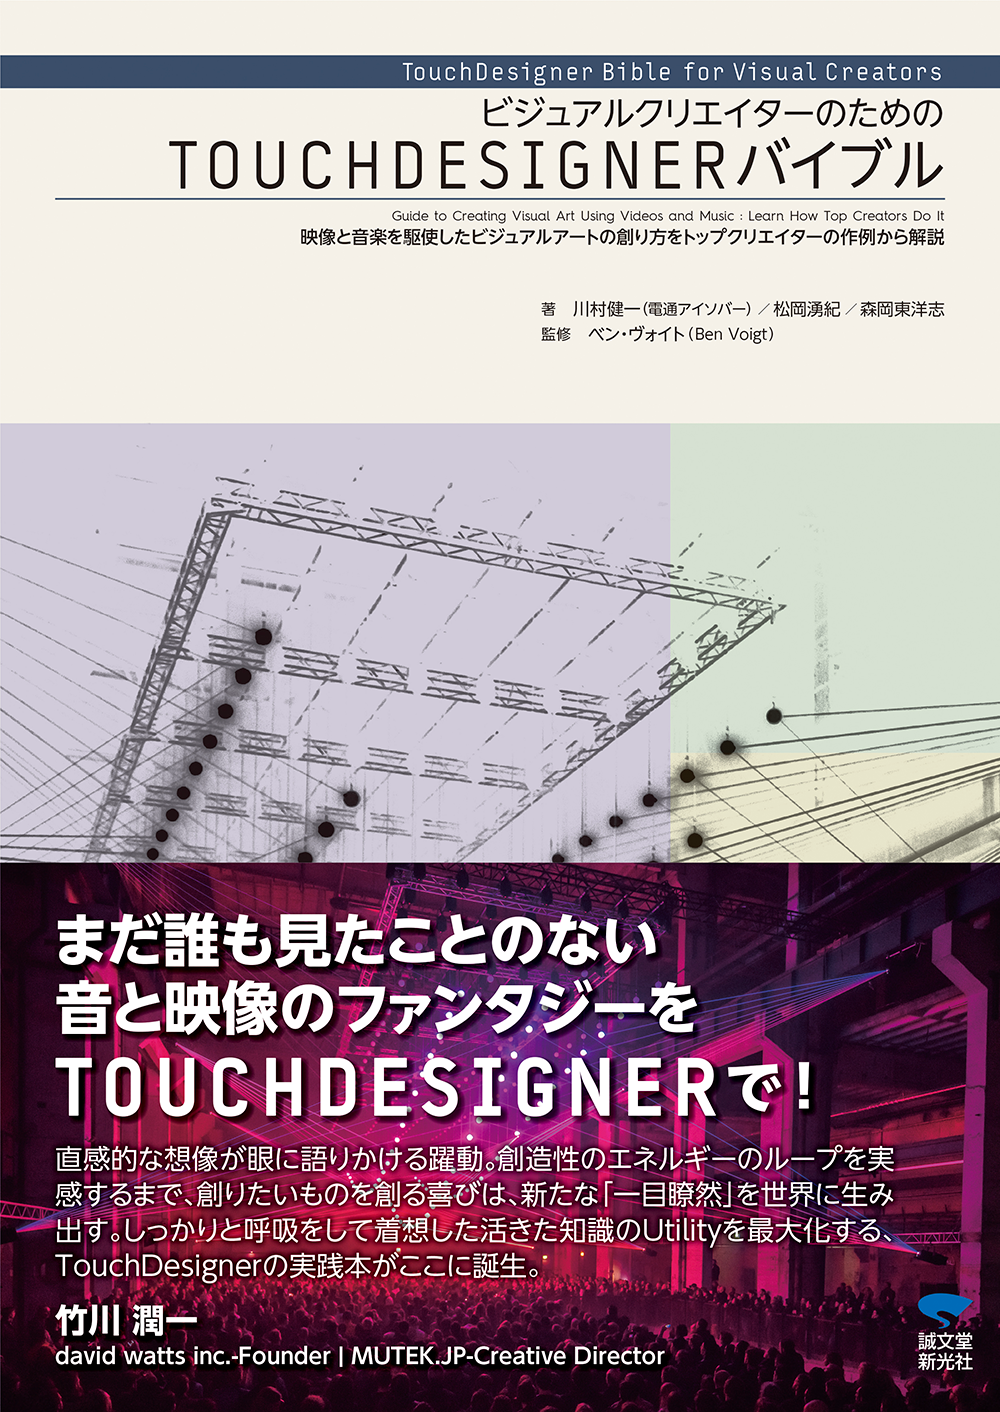 TouchDesigner Bible for Visual Creators